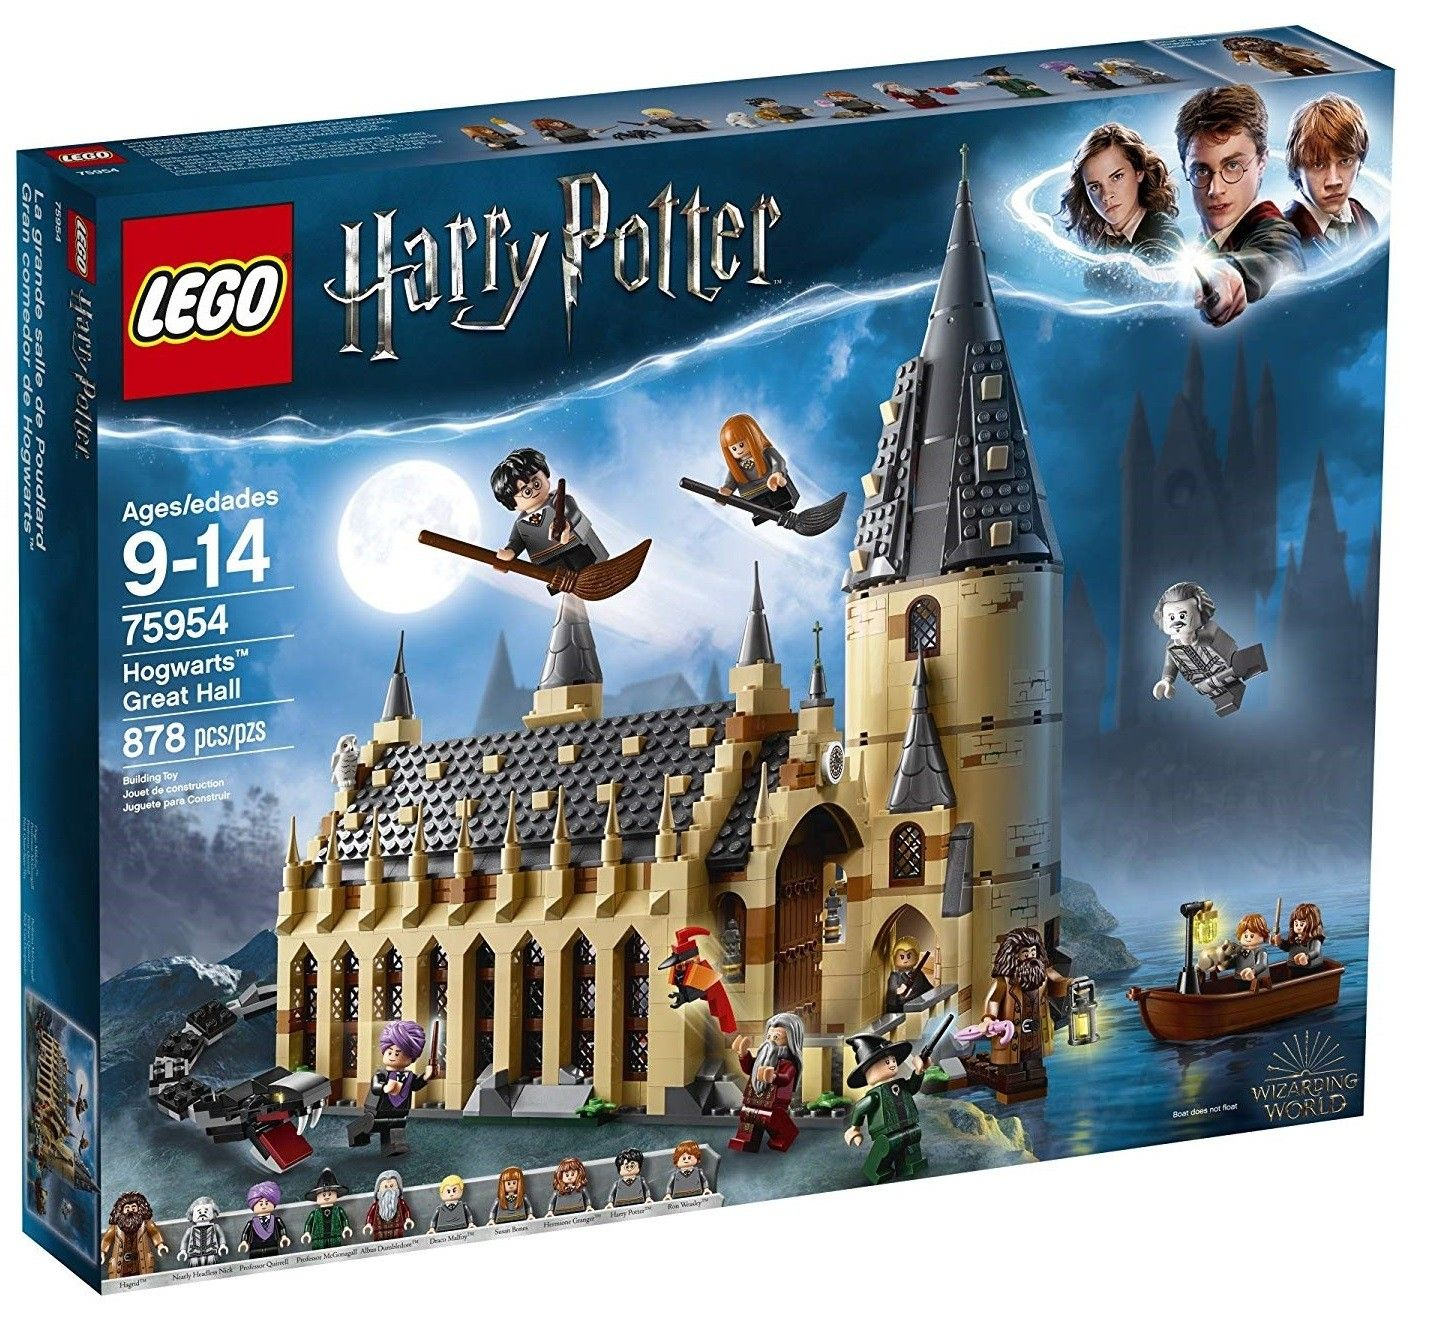 Lego Hogwarts Great Hall Building Set Ages 9 To 14 Lego Hogwarts Hogwarts Great Hall Lego Harry Potter